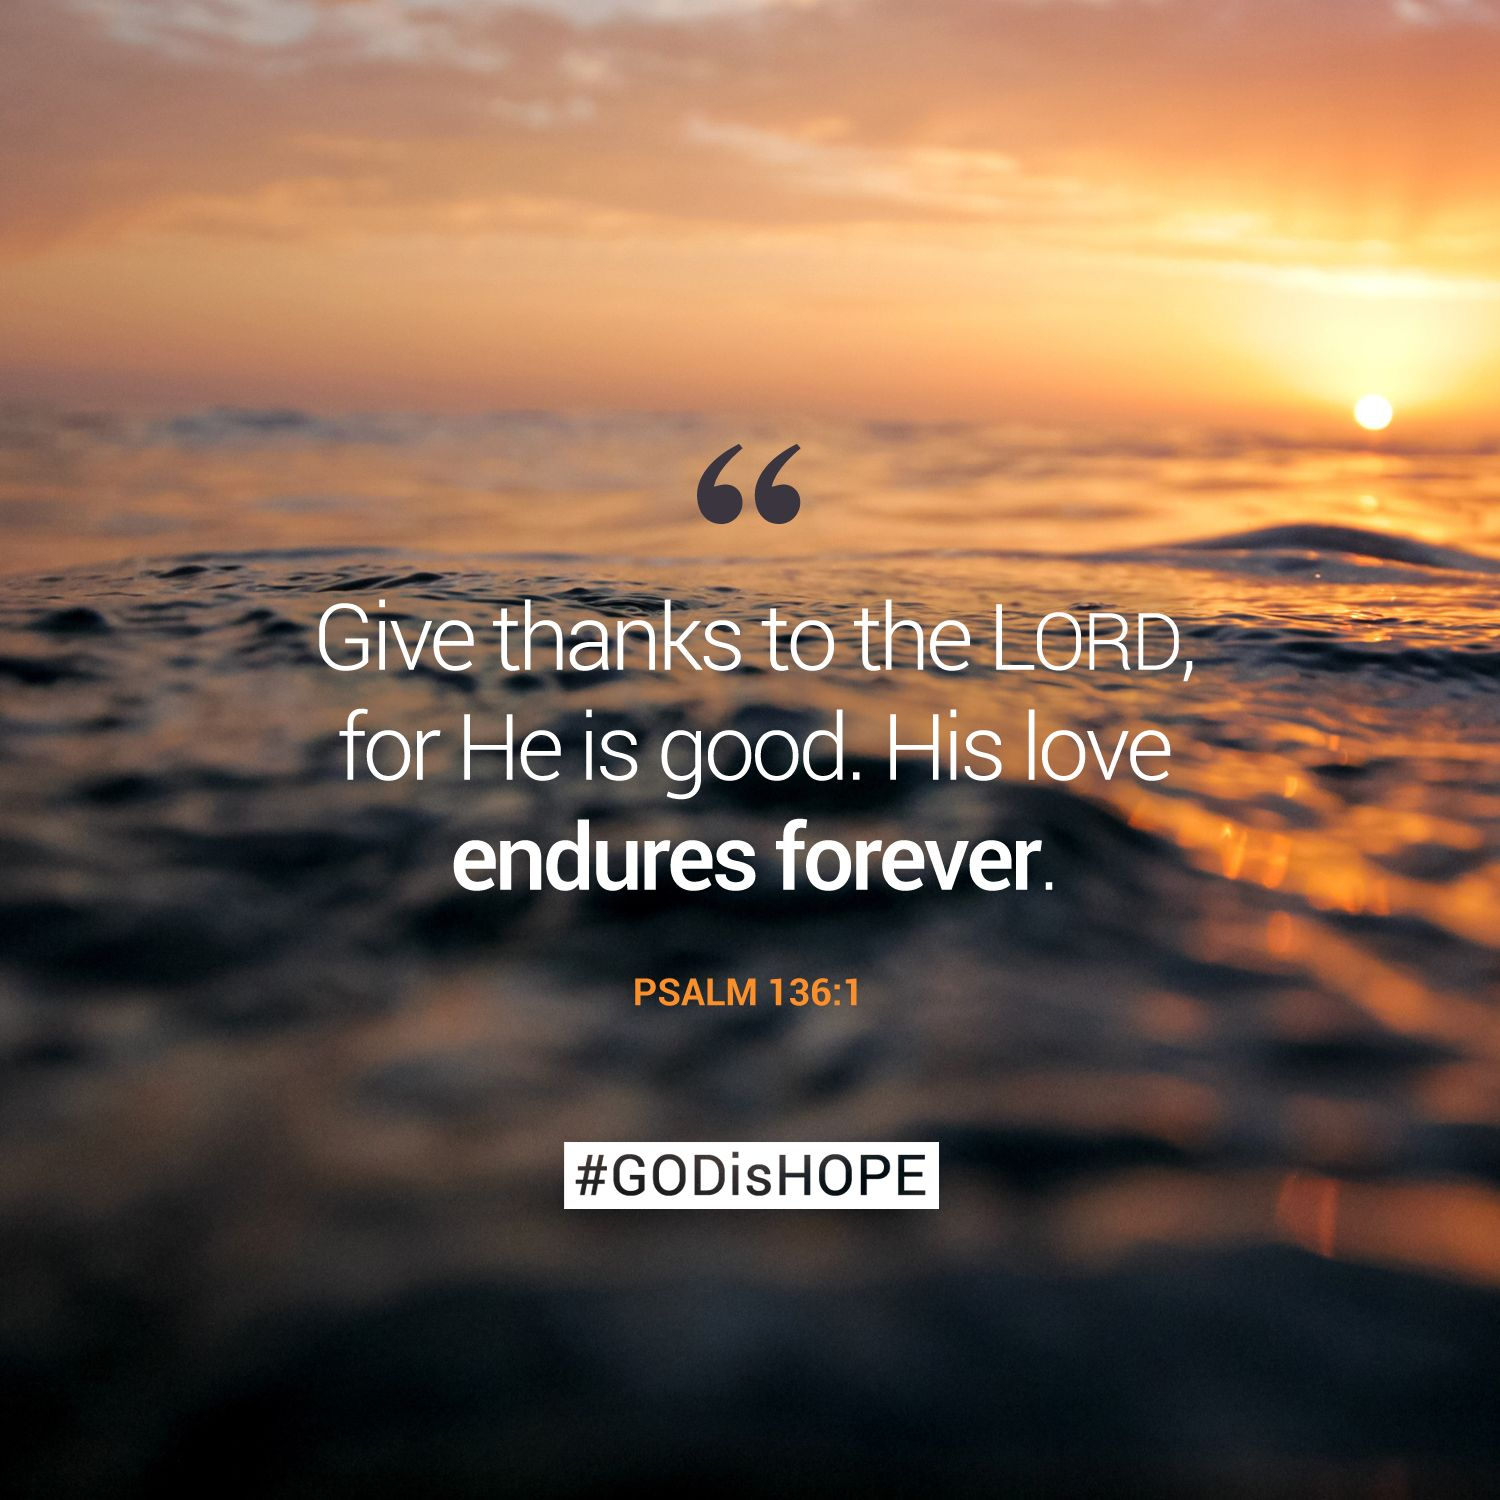 Quotes About Love In The Bible Give Thanks To The Lord For He Is Goodhis Love Endures Forever